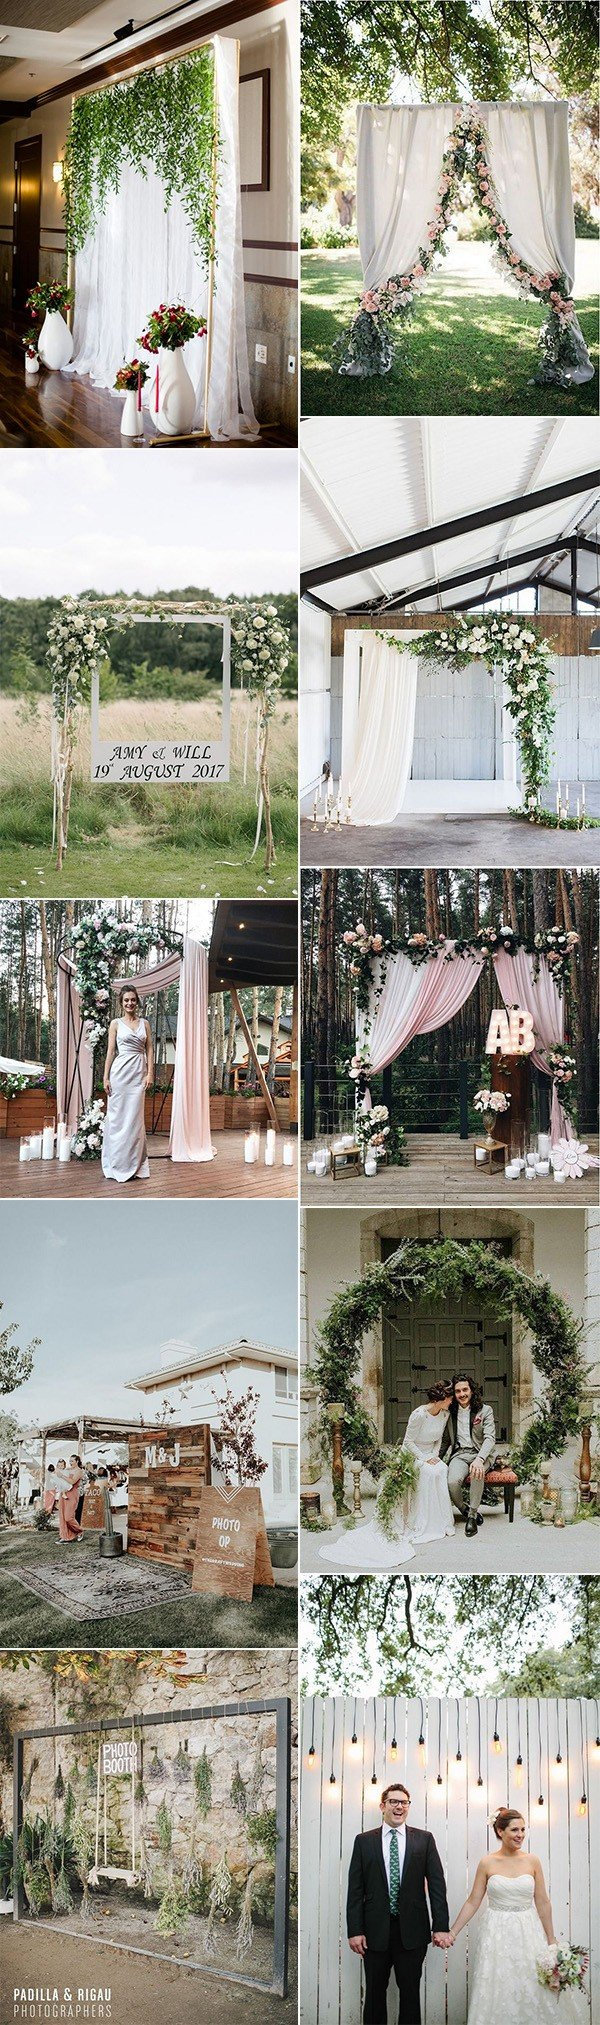 trending wedding photo booth backdrop ideas